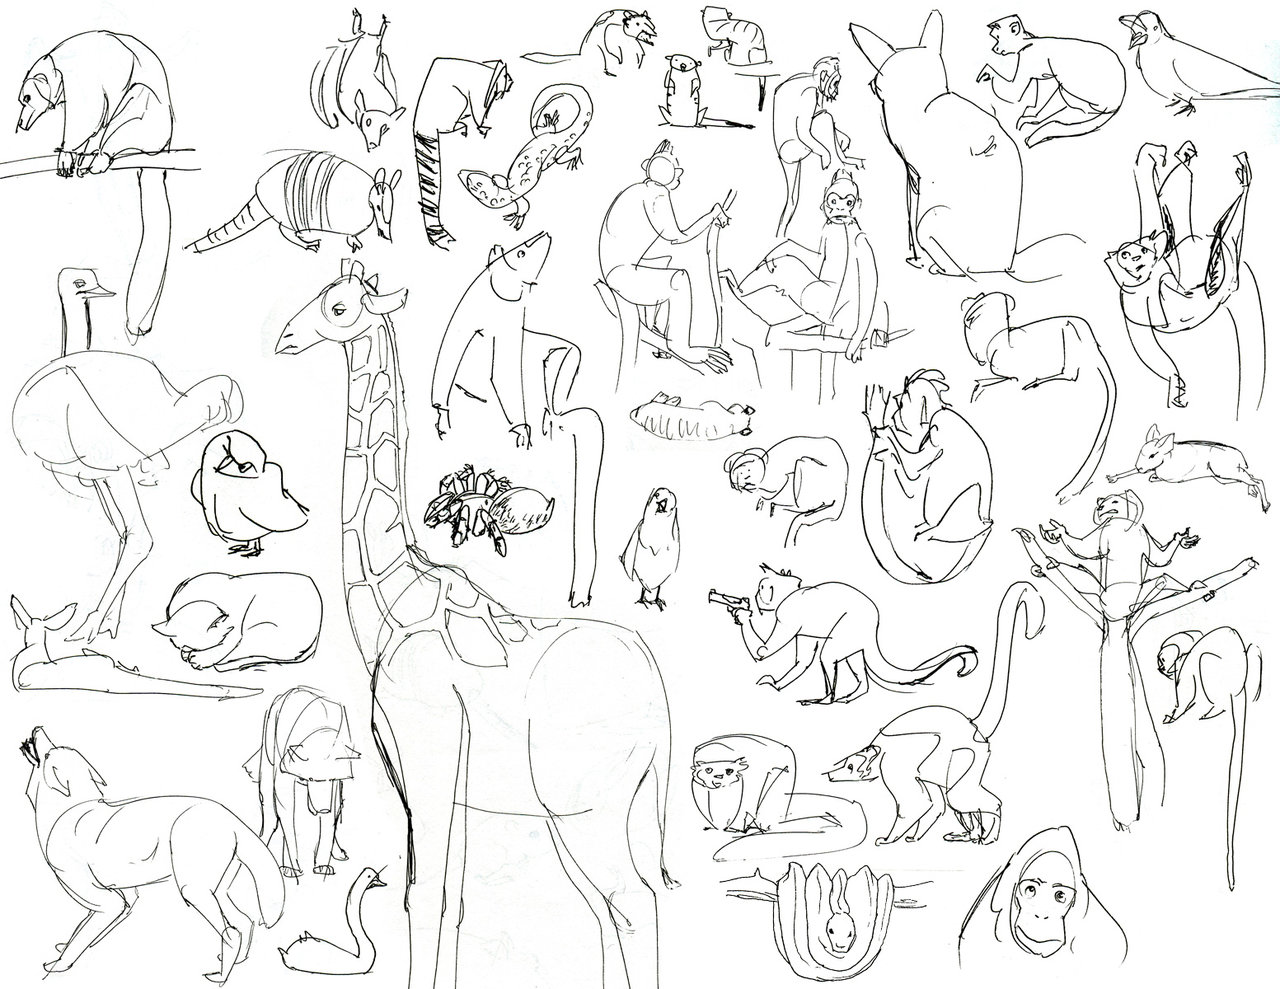 Zoo colouring pages to print - Download Zoo Coloring Pages 7 Print